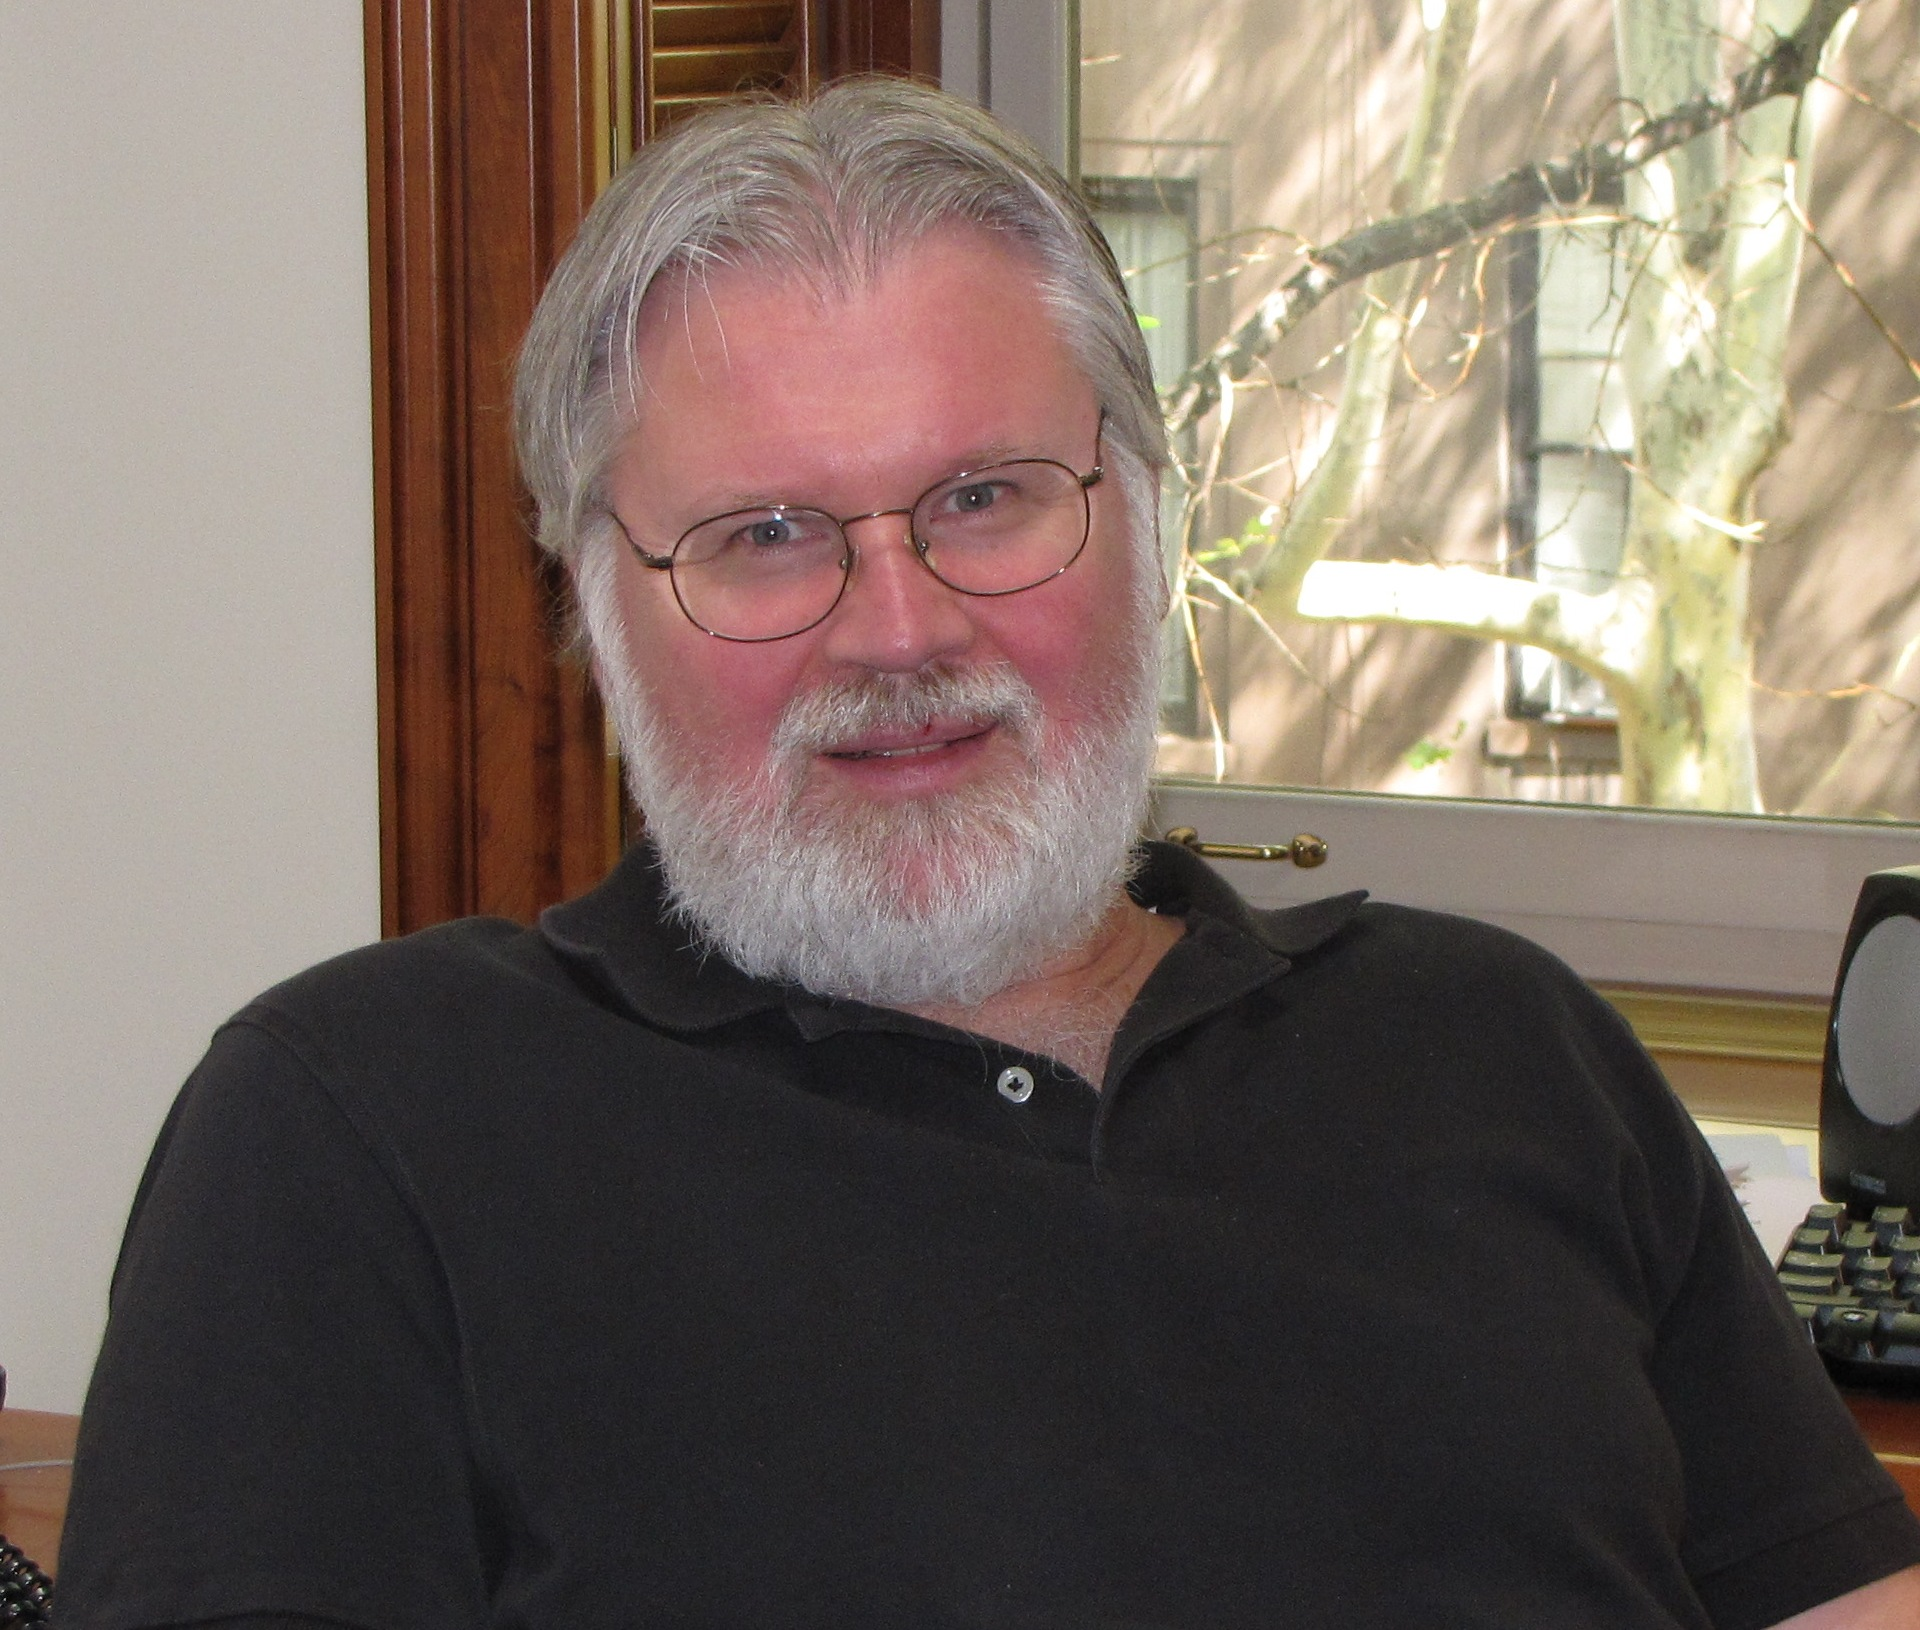 Photo of Douglas Massey with grey hair, beard, glasses, and black shirt.